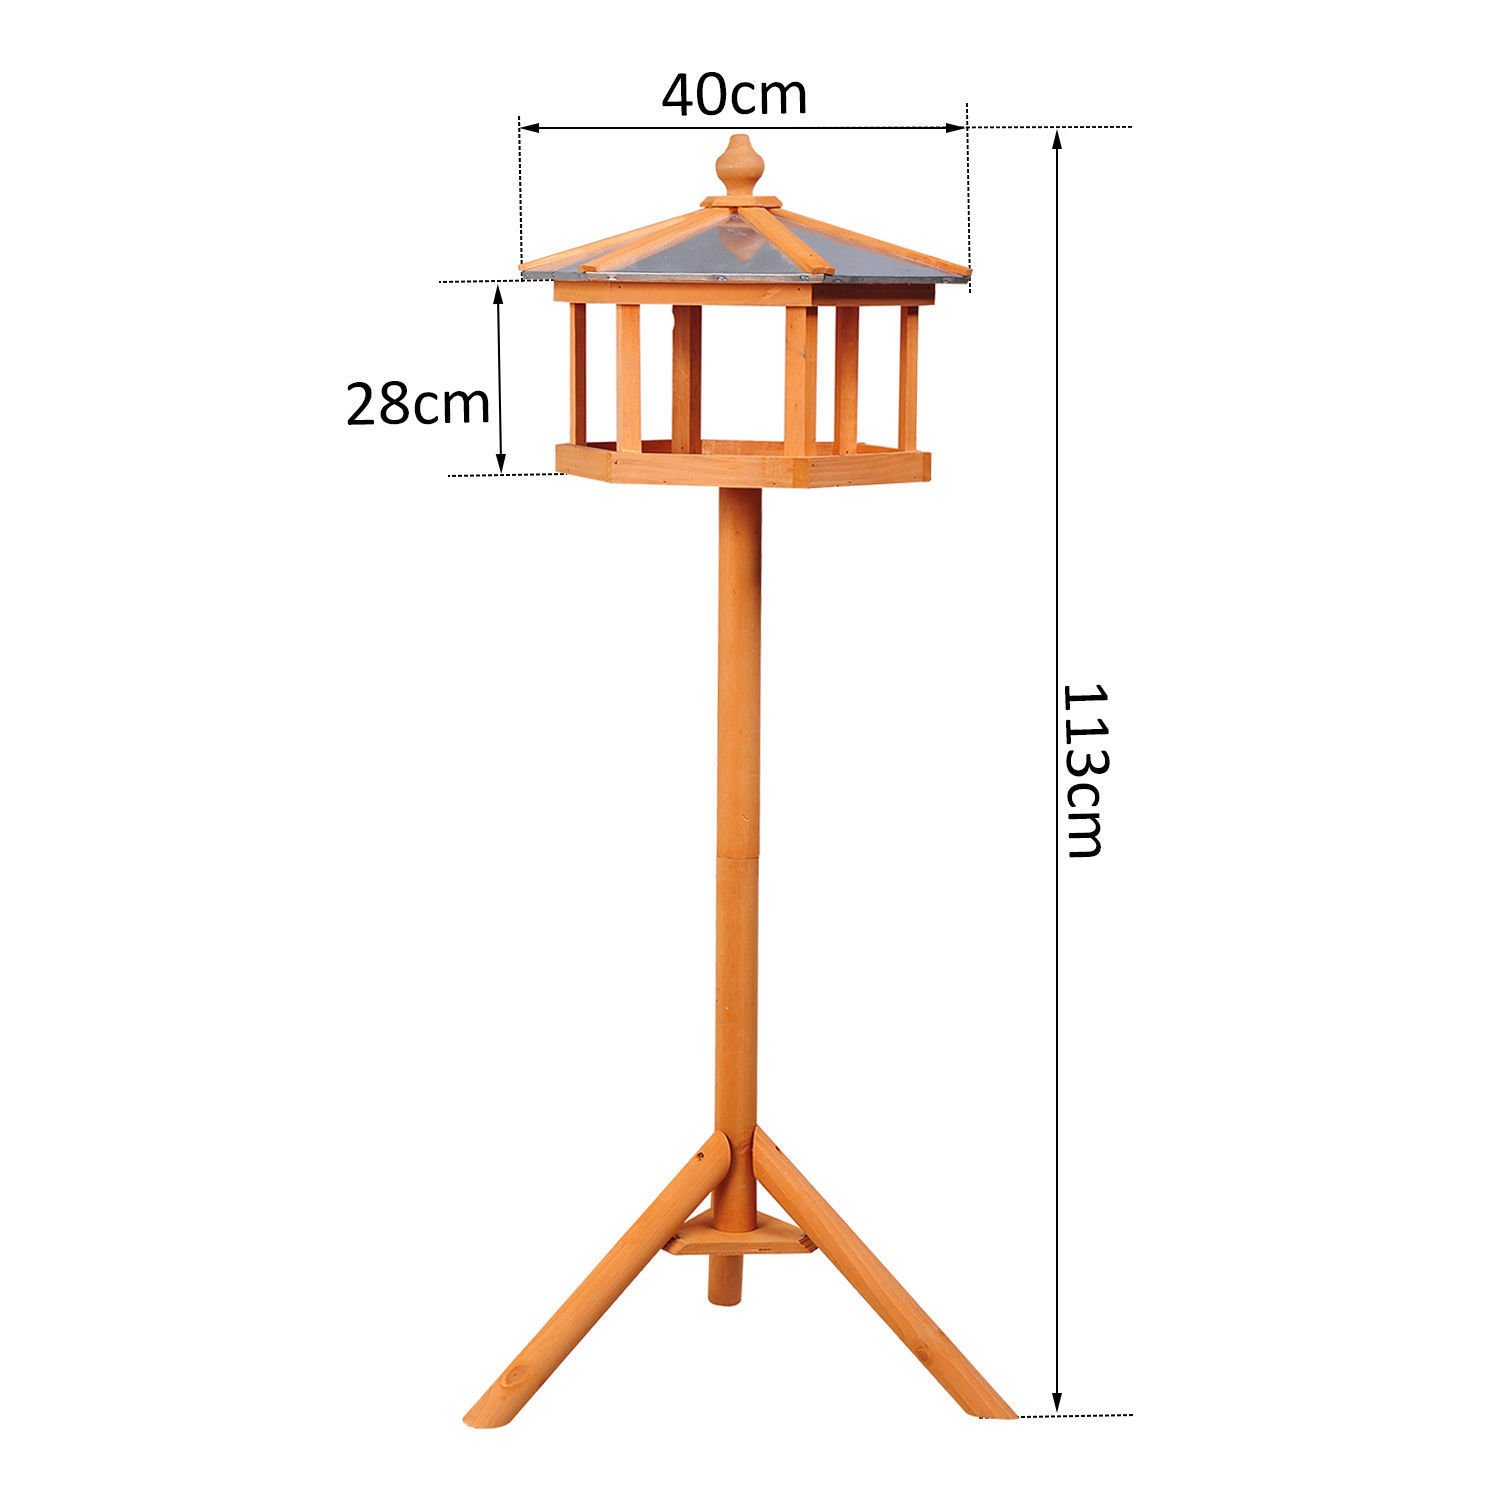 PawHut Deluxe Bird Stand Feeder Table Feeding Station Wooden Garden Wood Coop Parrot Stand 113cm High NEW Sold by MHSTAR PAD3-0006